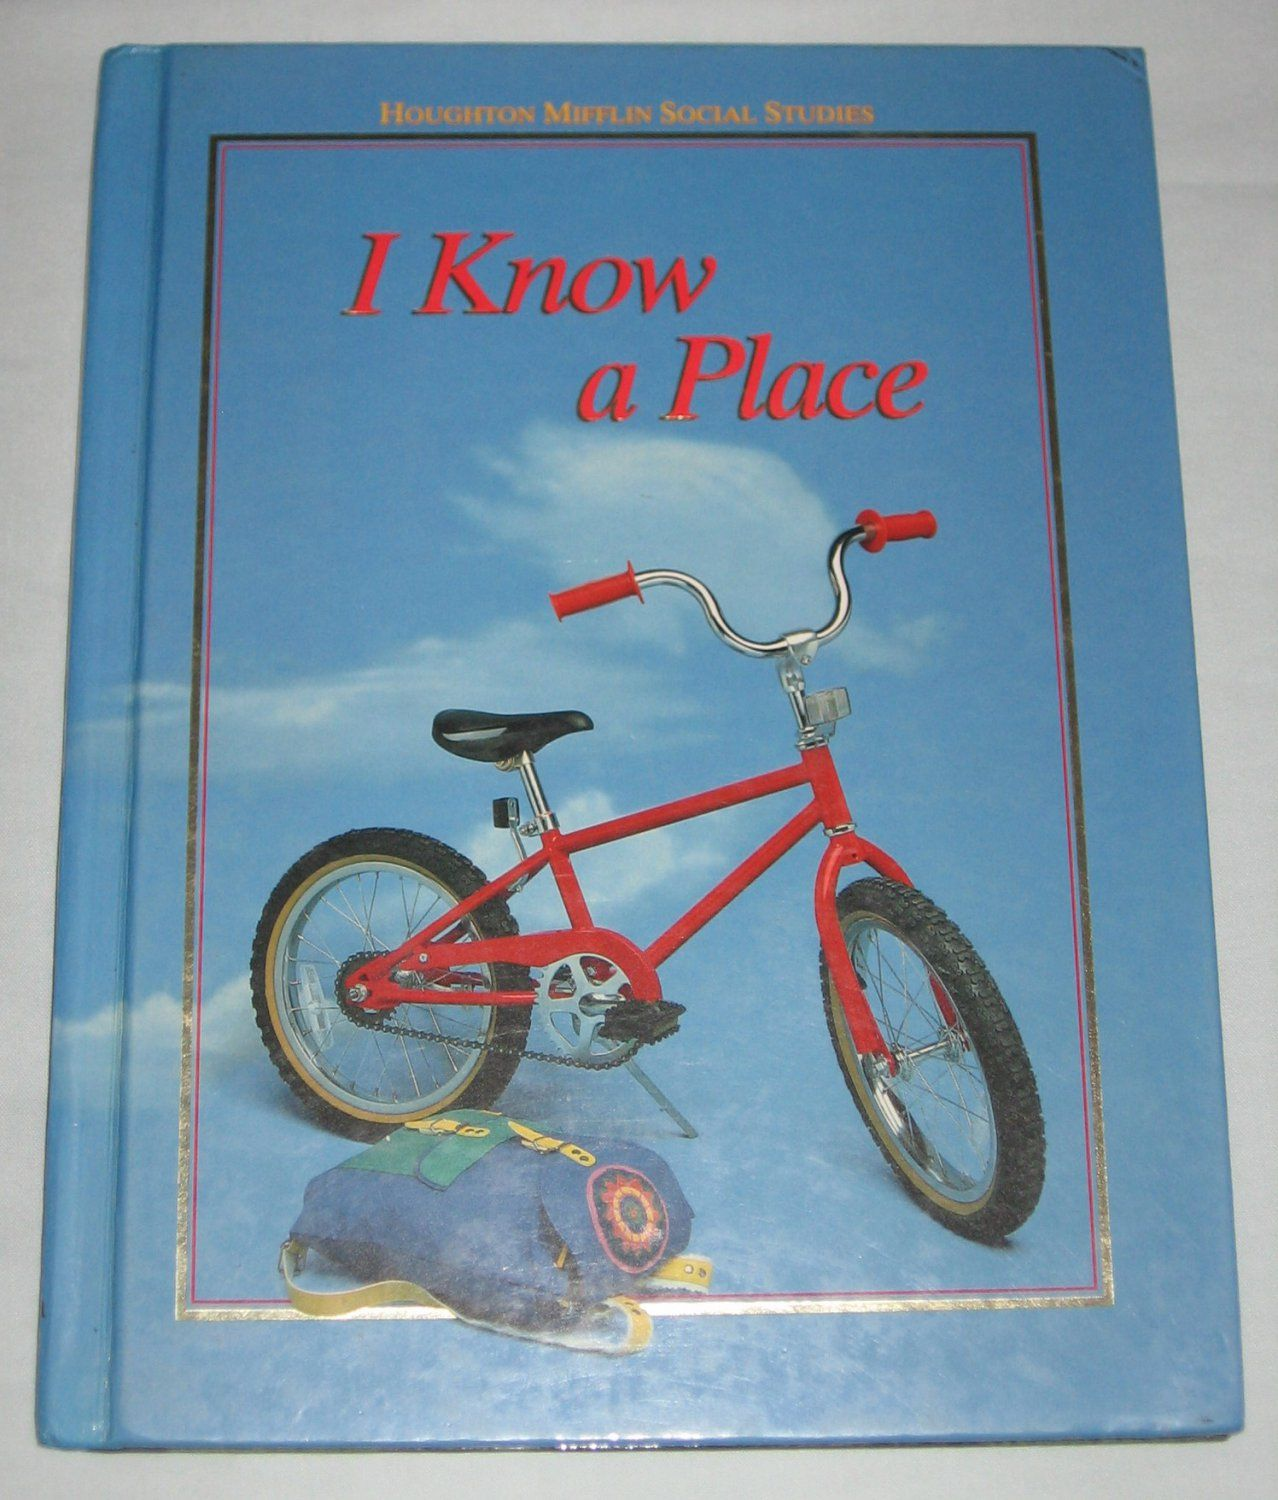 For Sale Houghton Mifflin Social Stu S I Know A Place